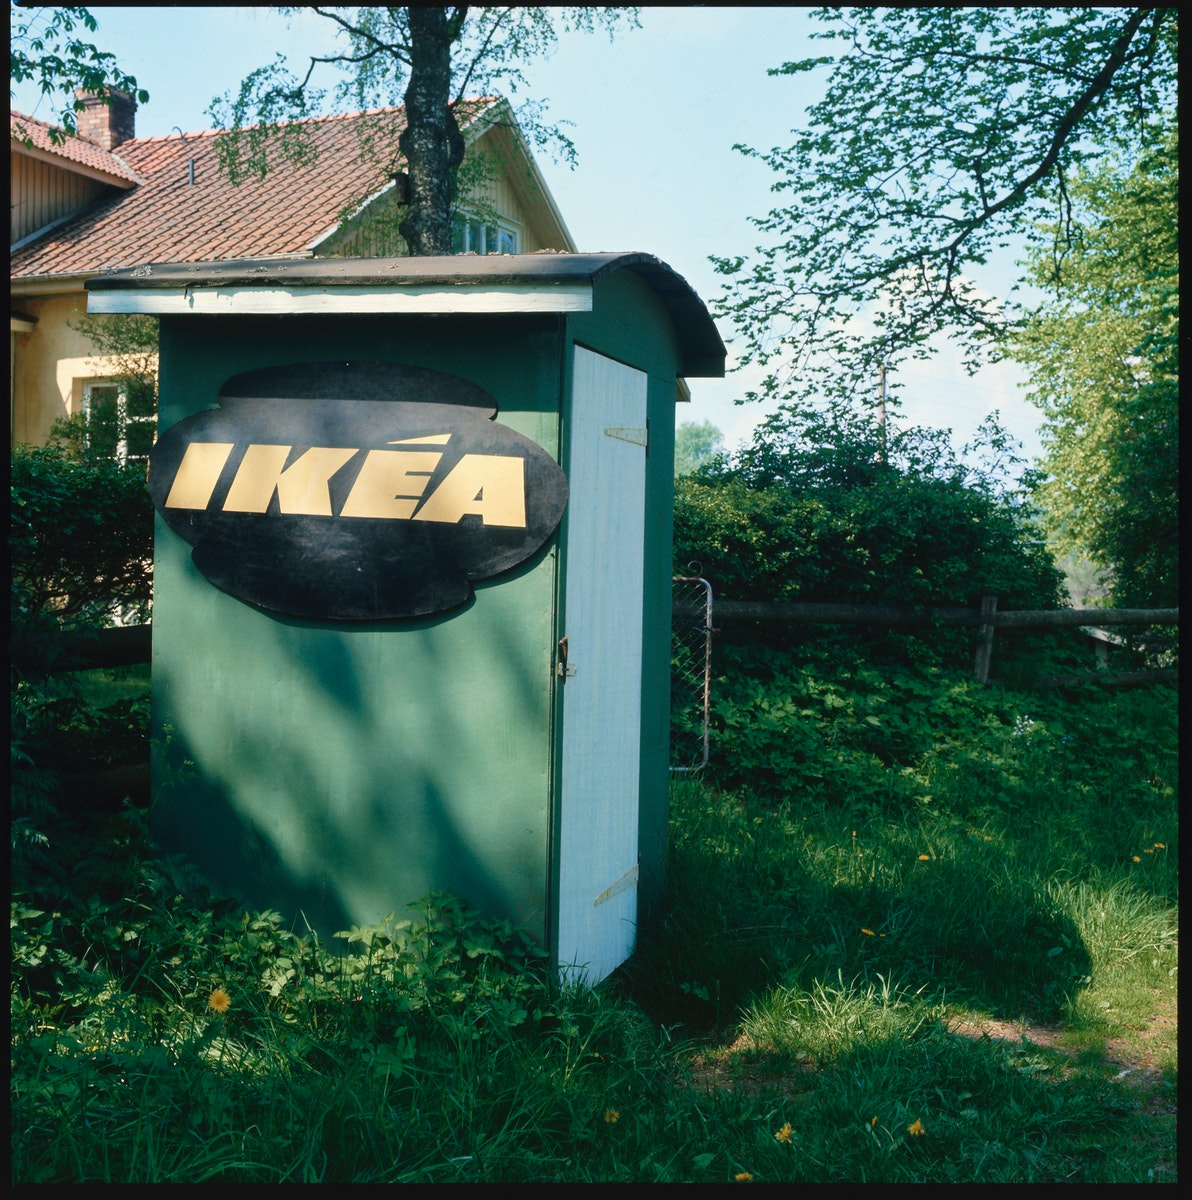 Ikea Delivery and Moving Service